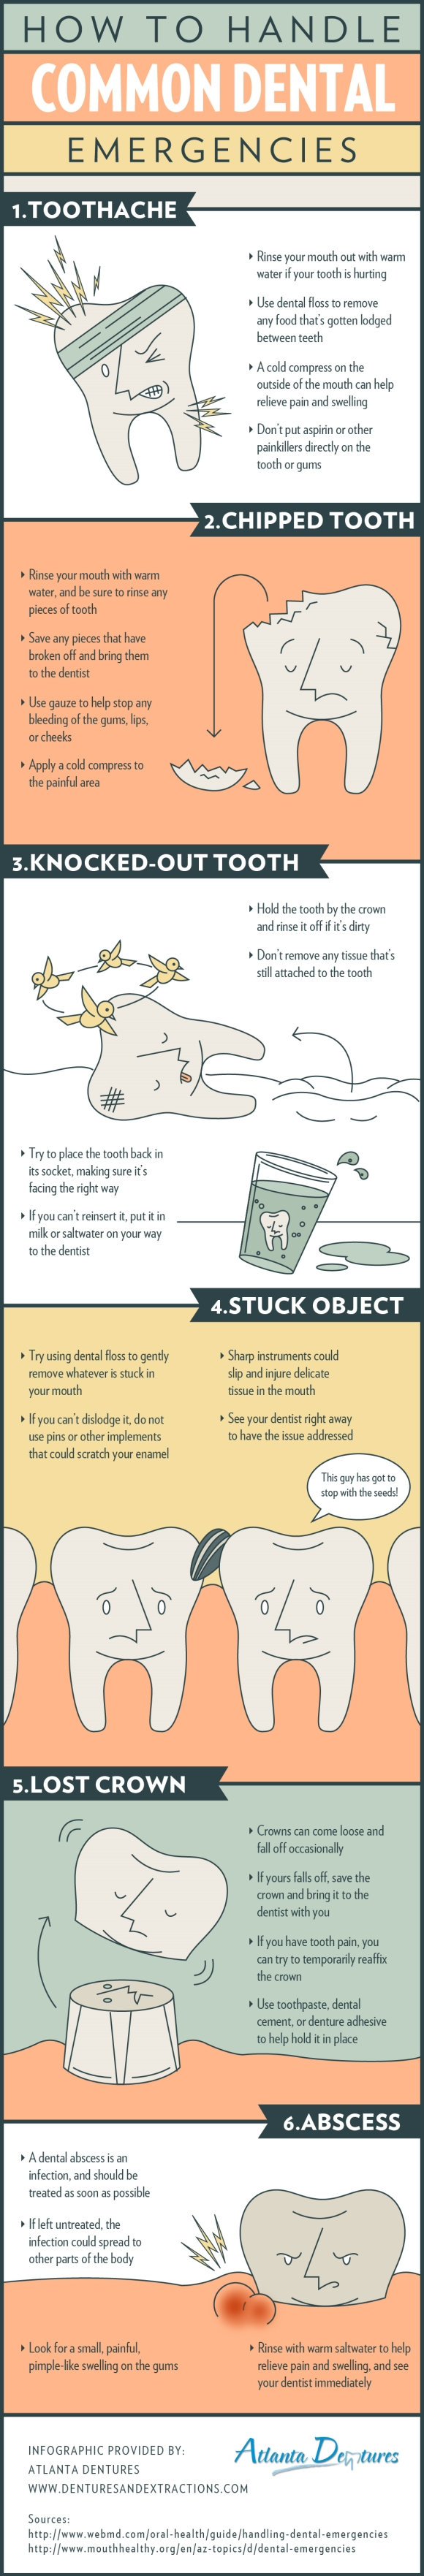 How-to-Handle-Common-Dental-Emergencies-Infographic-01